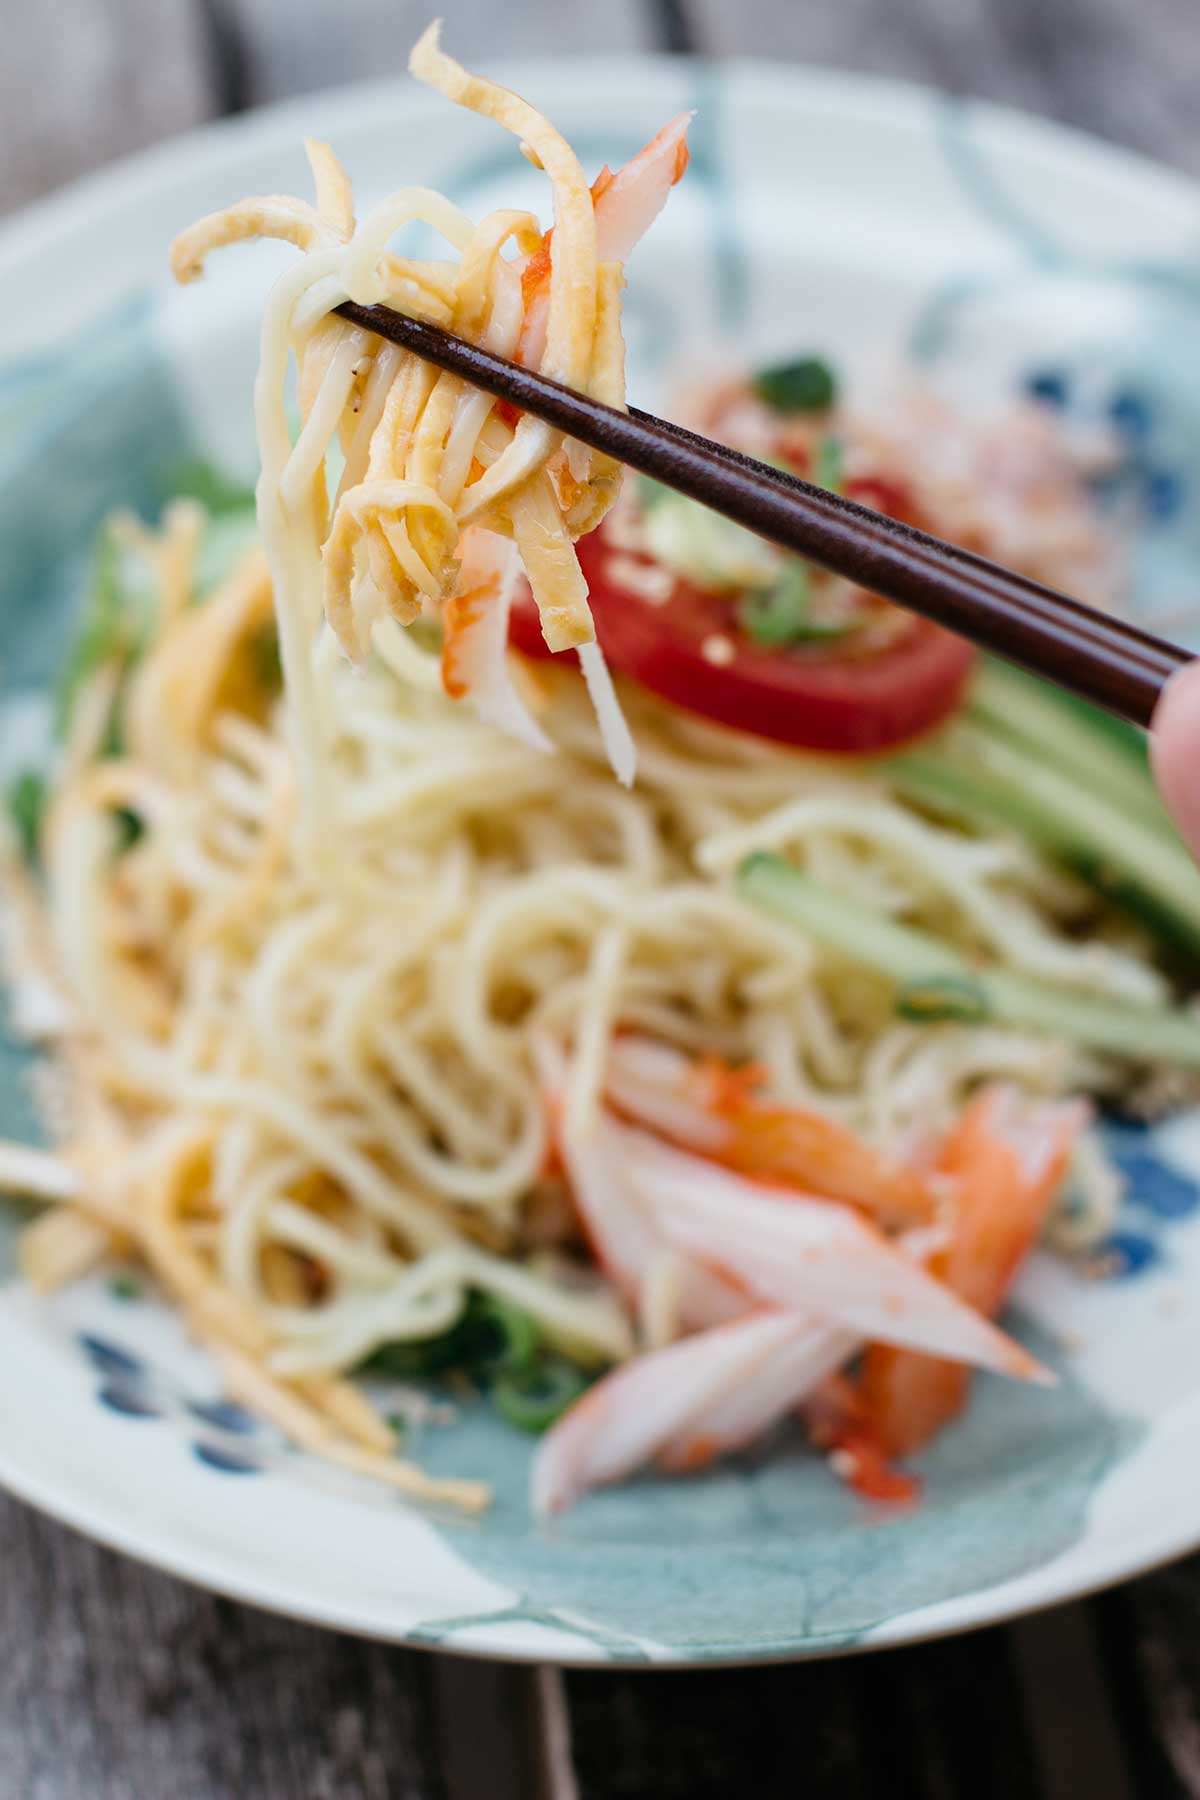 Cold Ramen Salad (Hiyashi Chuka) with Sesame Dressing